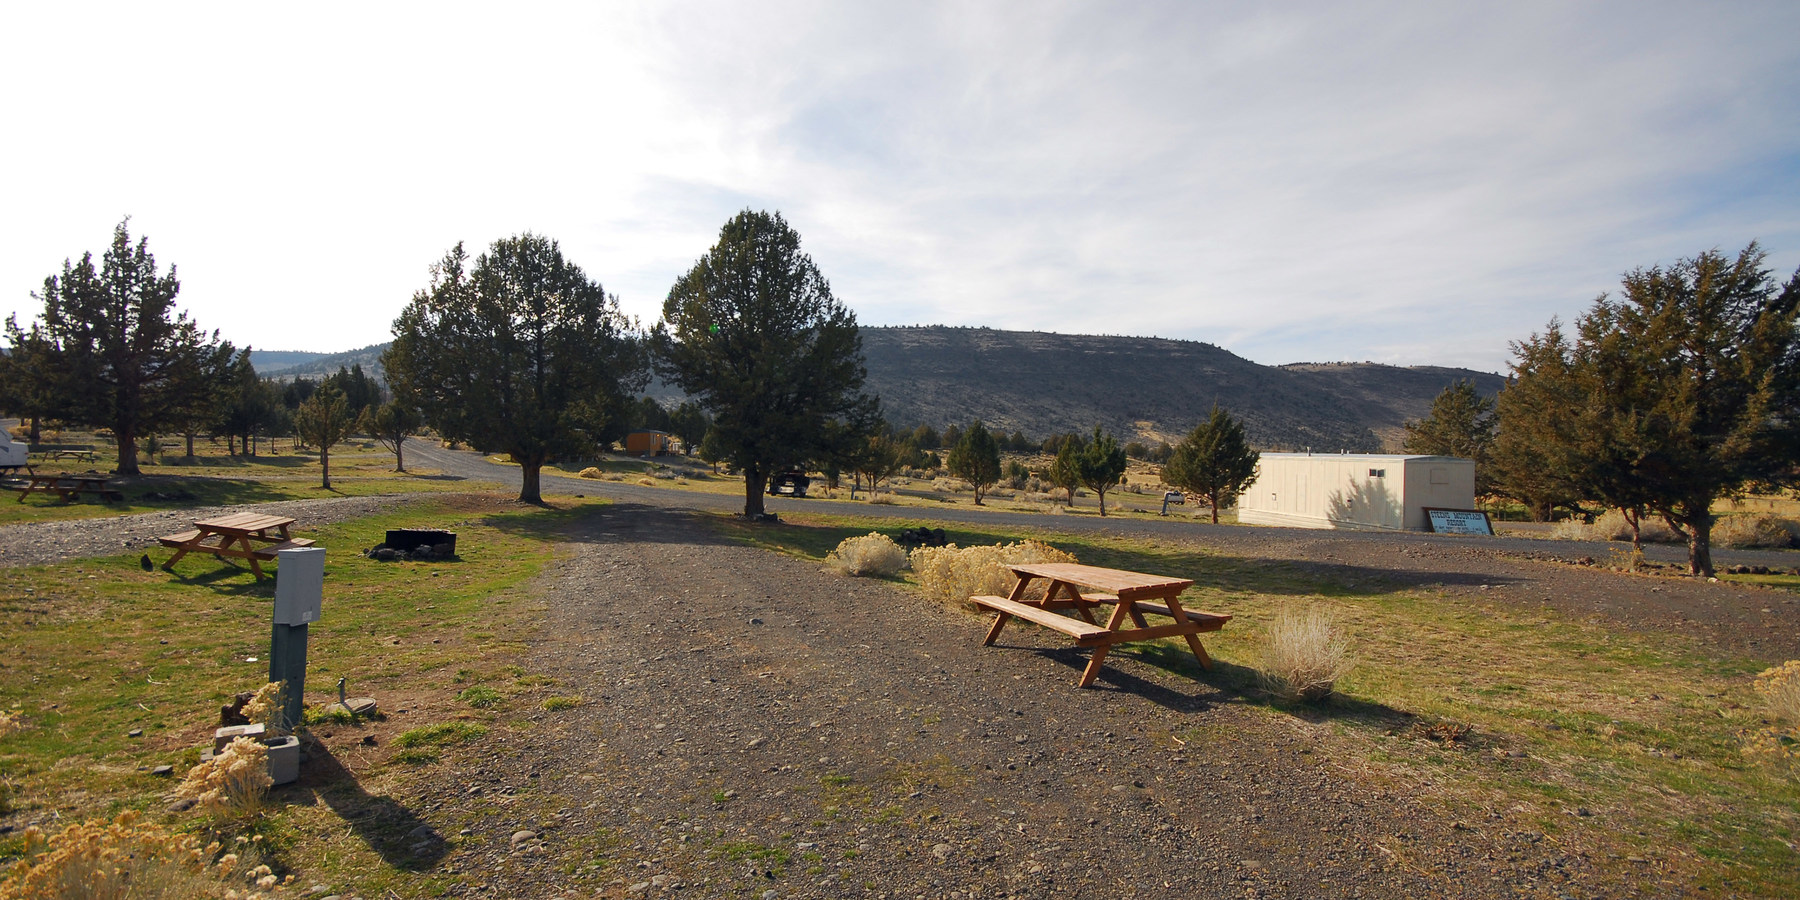 steens mountain wilderness resort campground | outdoor project